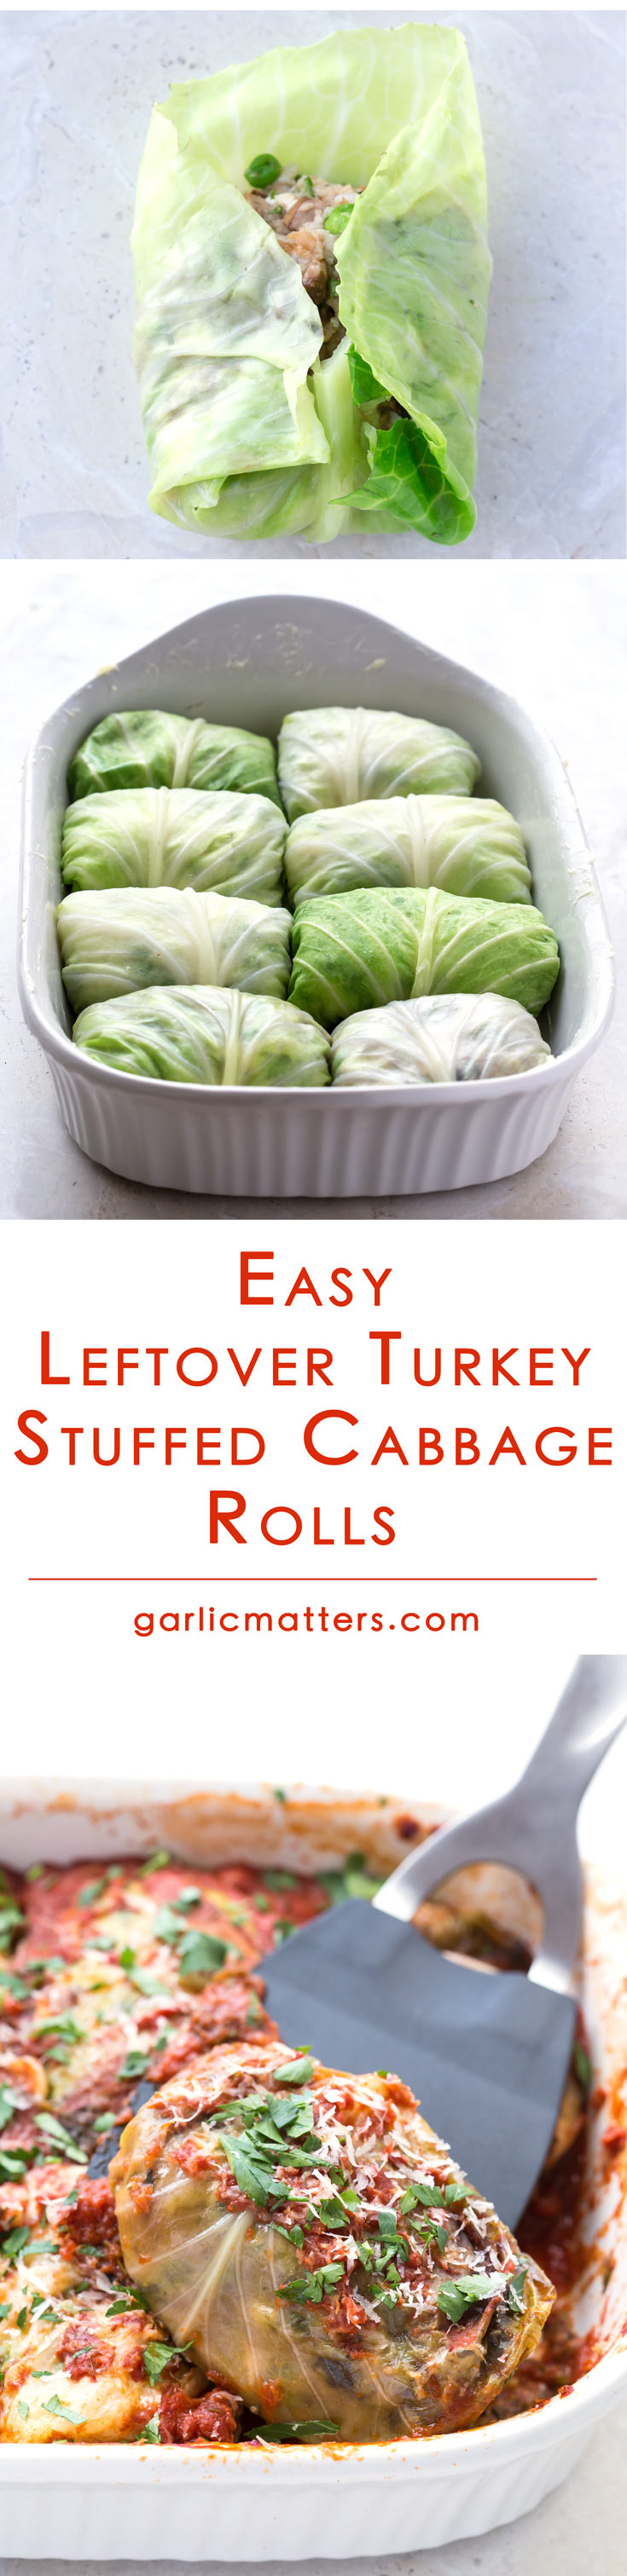 Leftover Turkey Stuffed Cabbage Rolls are yet another great way to reinvent your holiday roast leftovers. This is an easy casserole recipe, related to Polish, oven baked stuffed cabbage rolls. For the convenience of things these tasty stuffed cabbage rolls can also be made in a slow cooker (crockpot)!